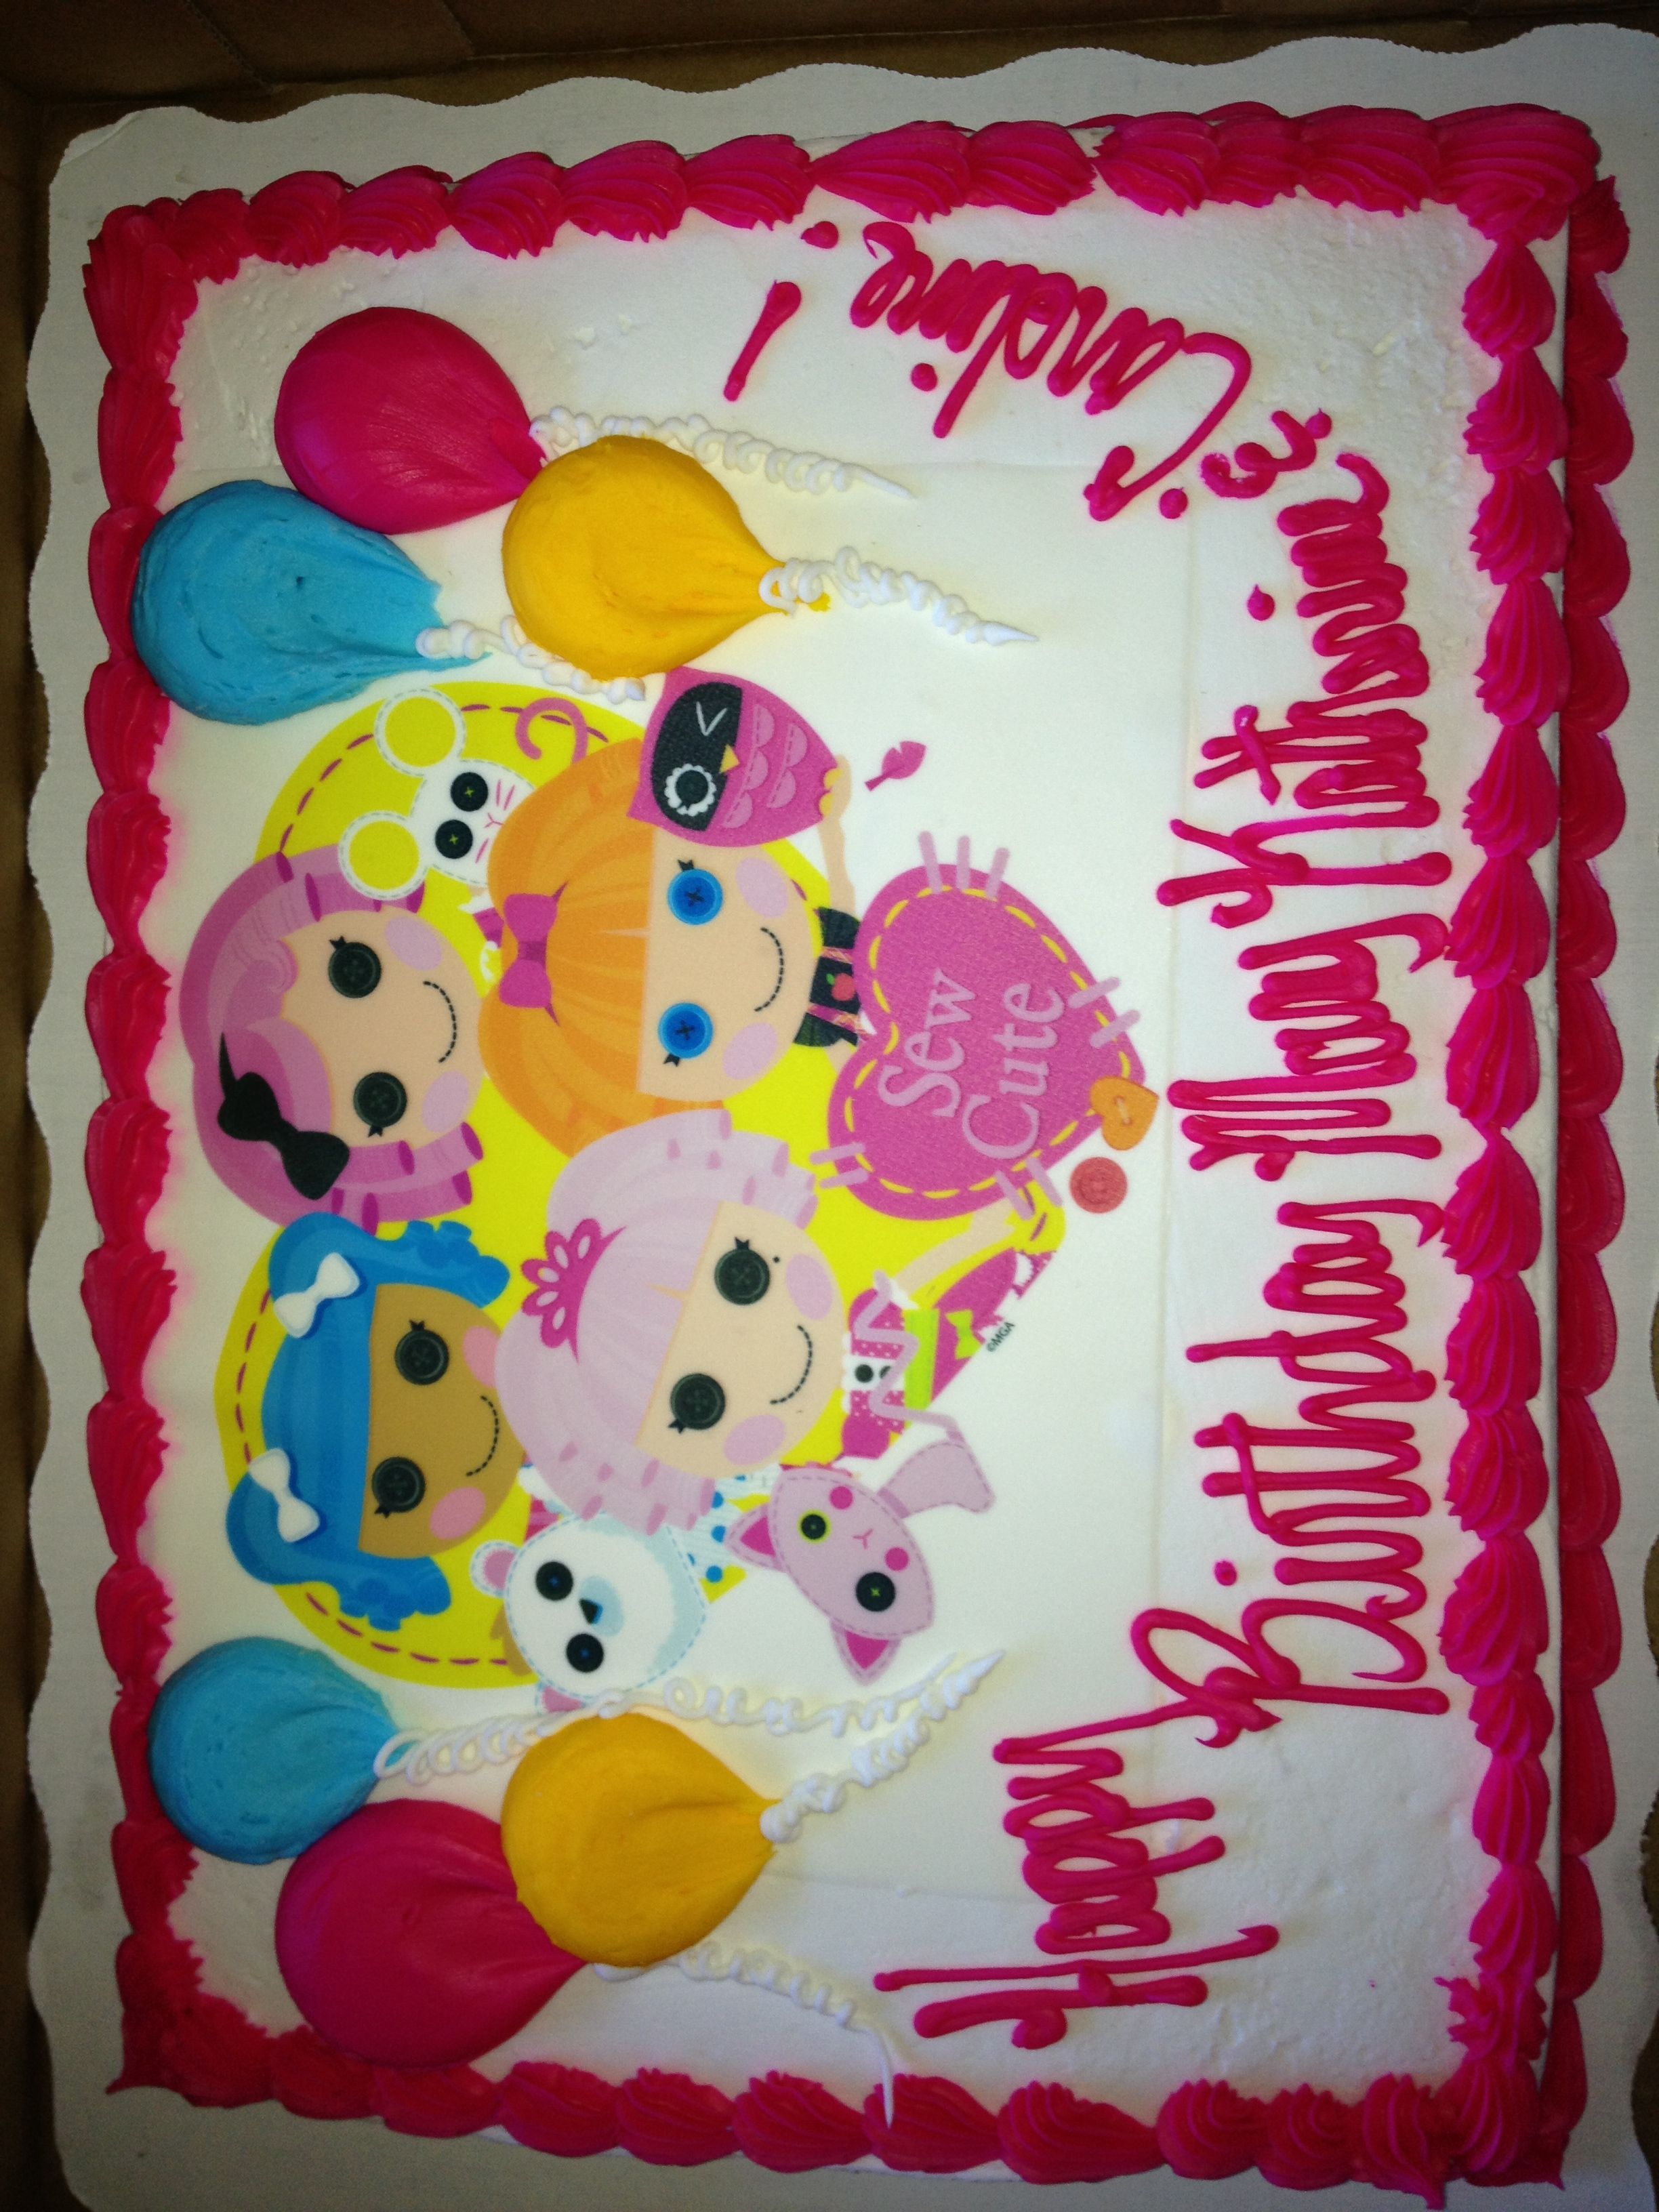 Sams Club Cake Design Book : Cake--found the best priced Lalaloopsy cake at Sam s Club ...